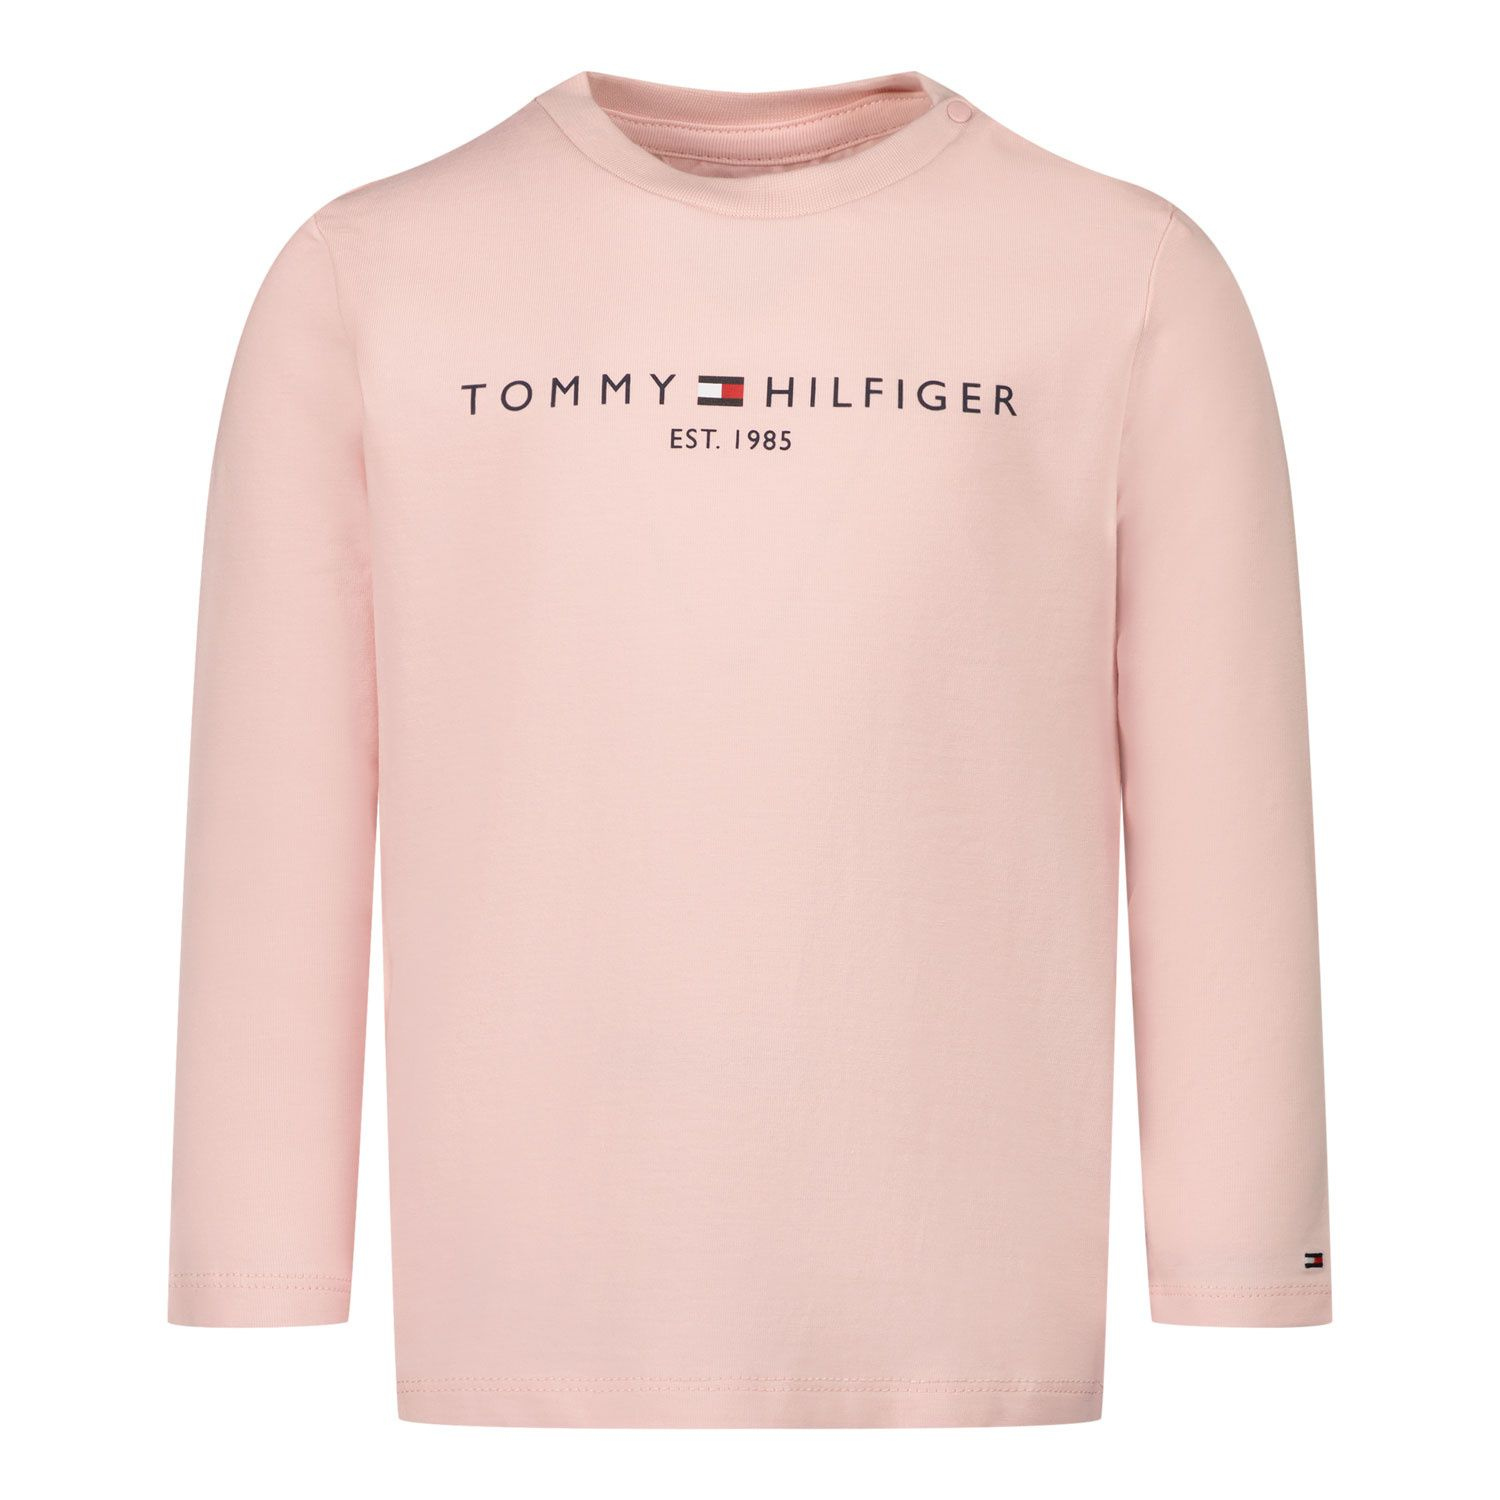 Picture of Tommy Hilfiger KN0KN01249 baby shirt light pink